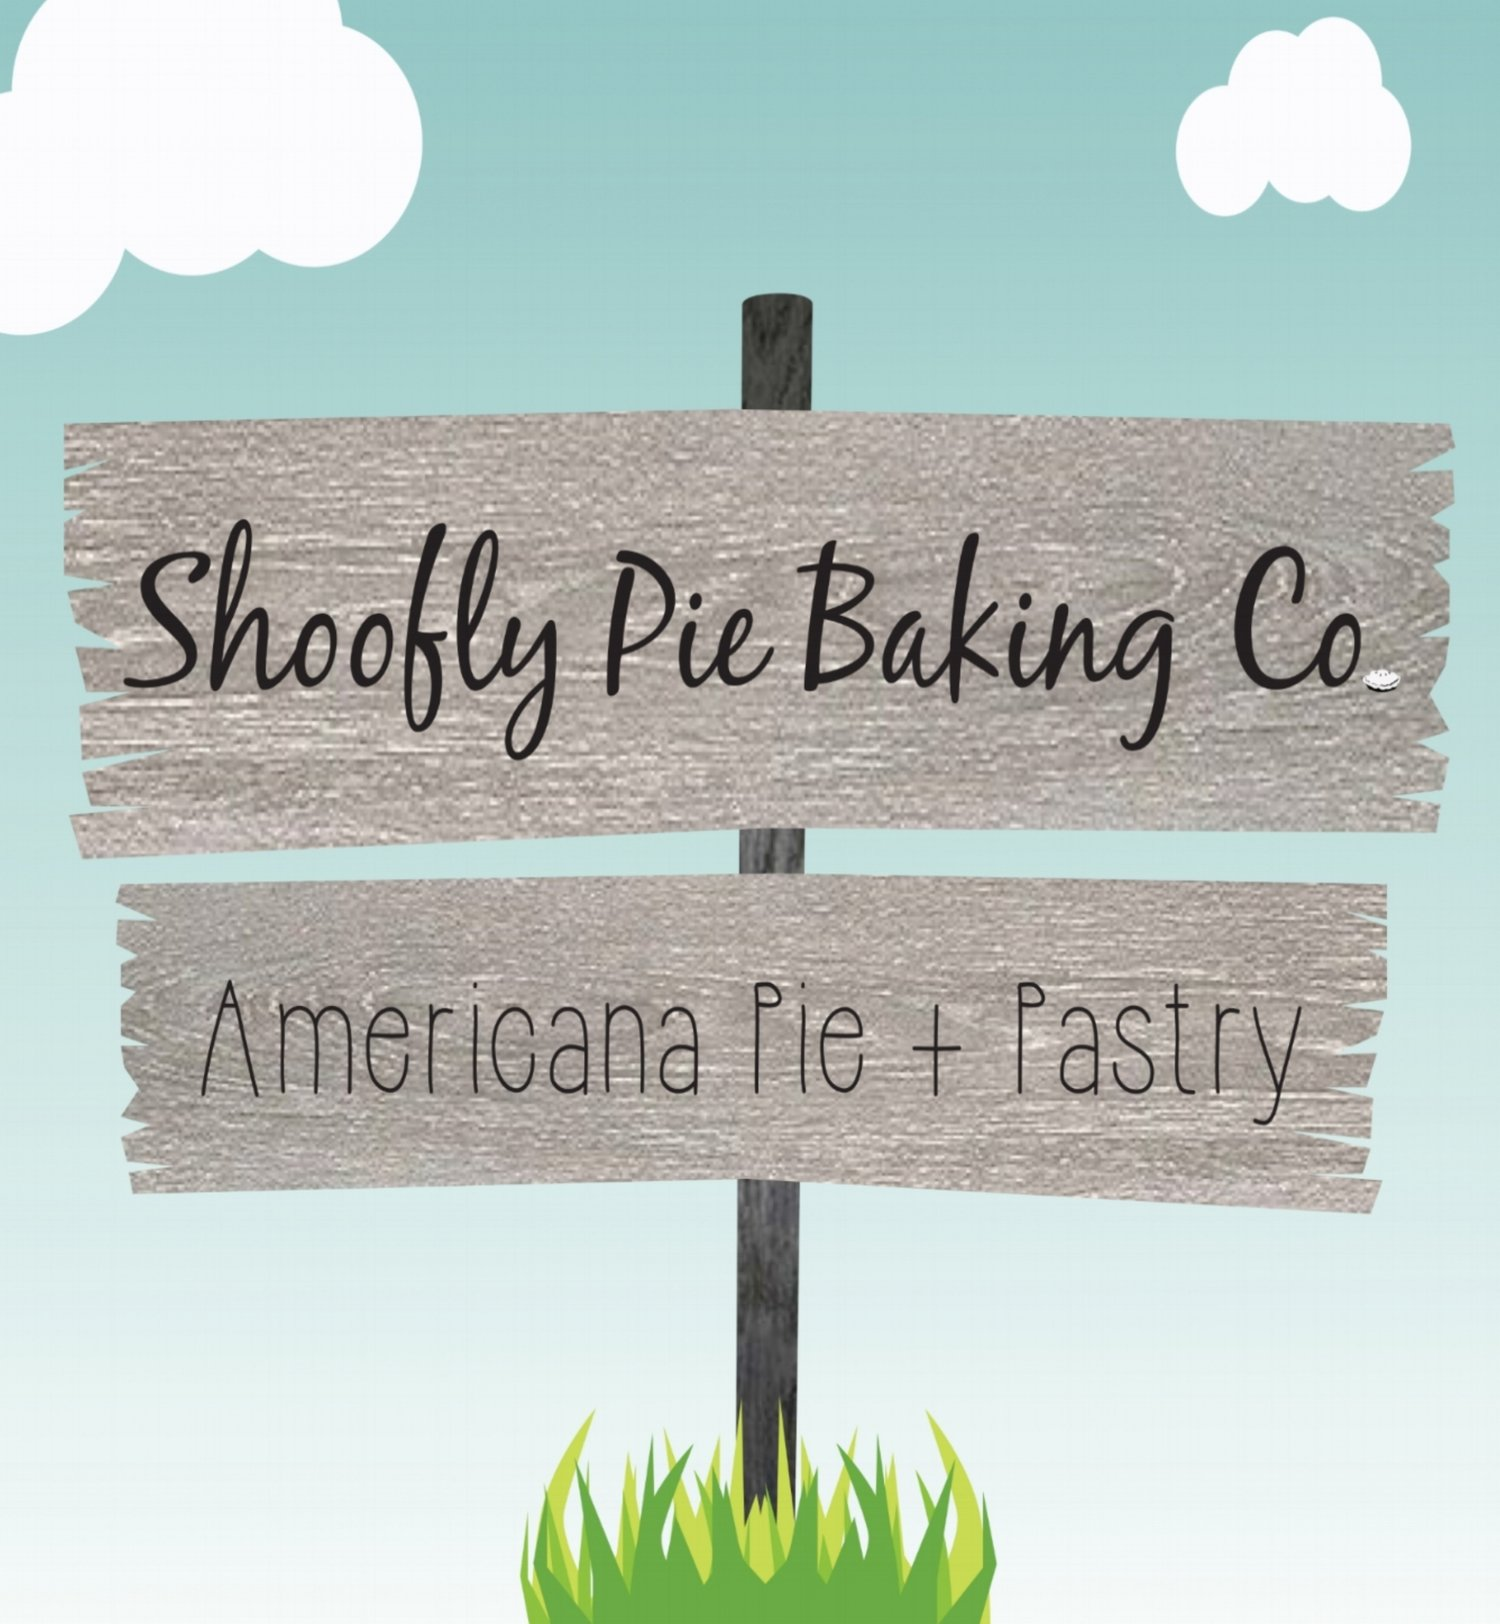 Shoofly Pie Baking Co.